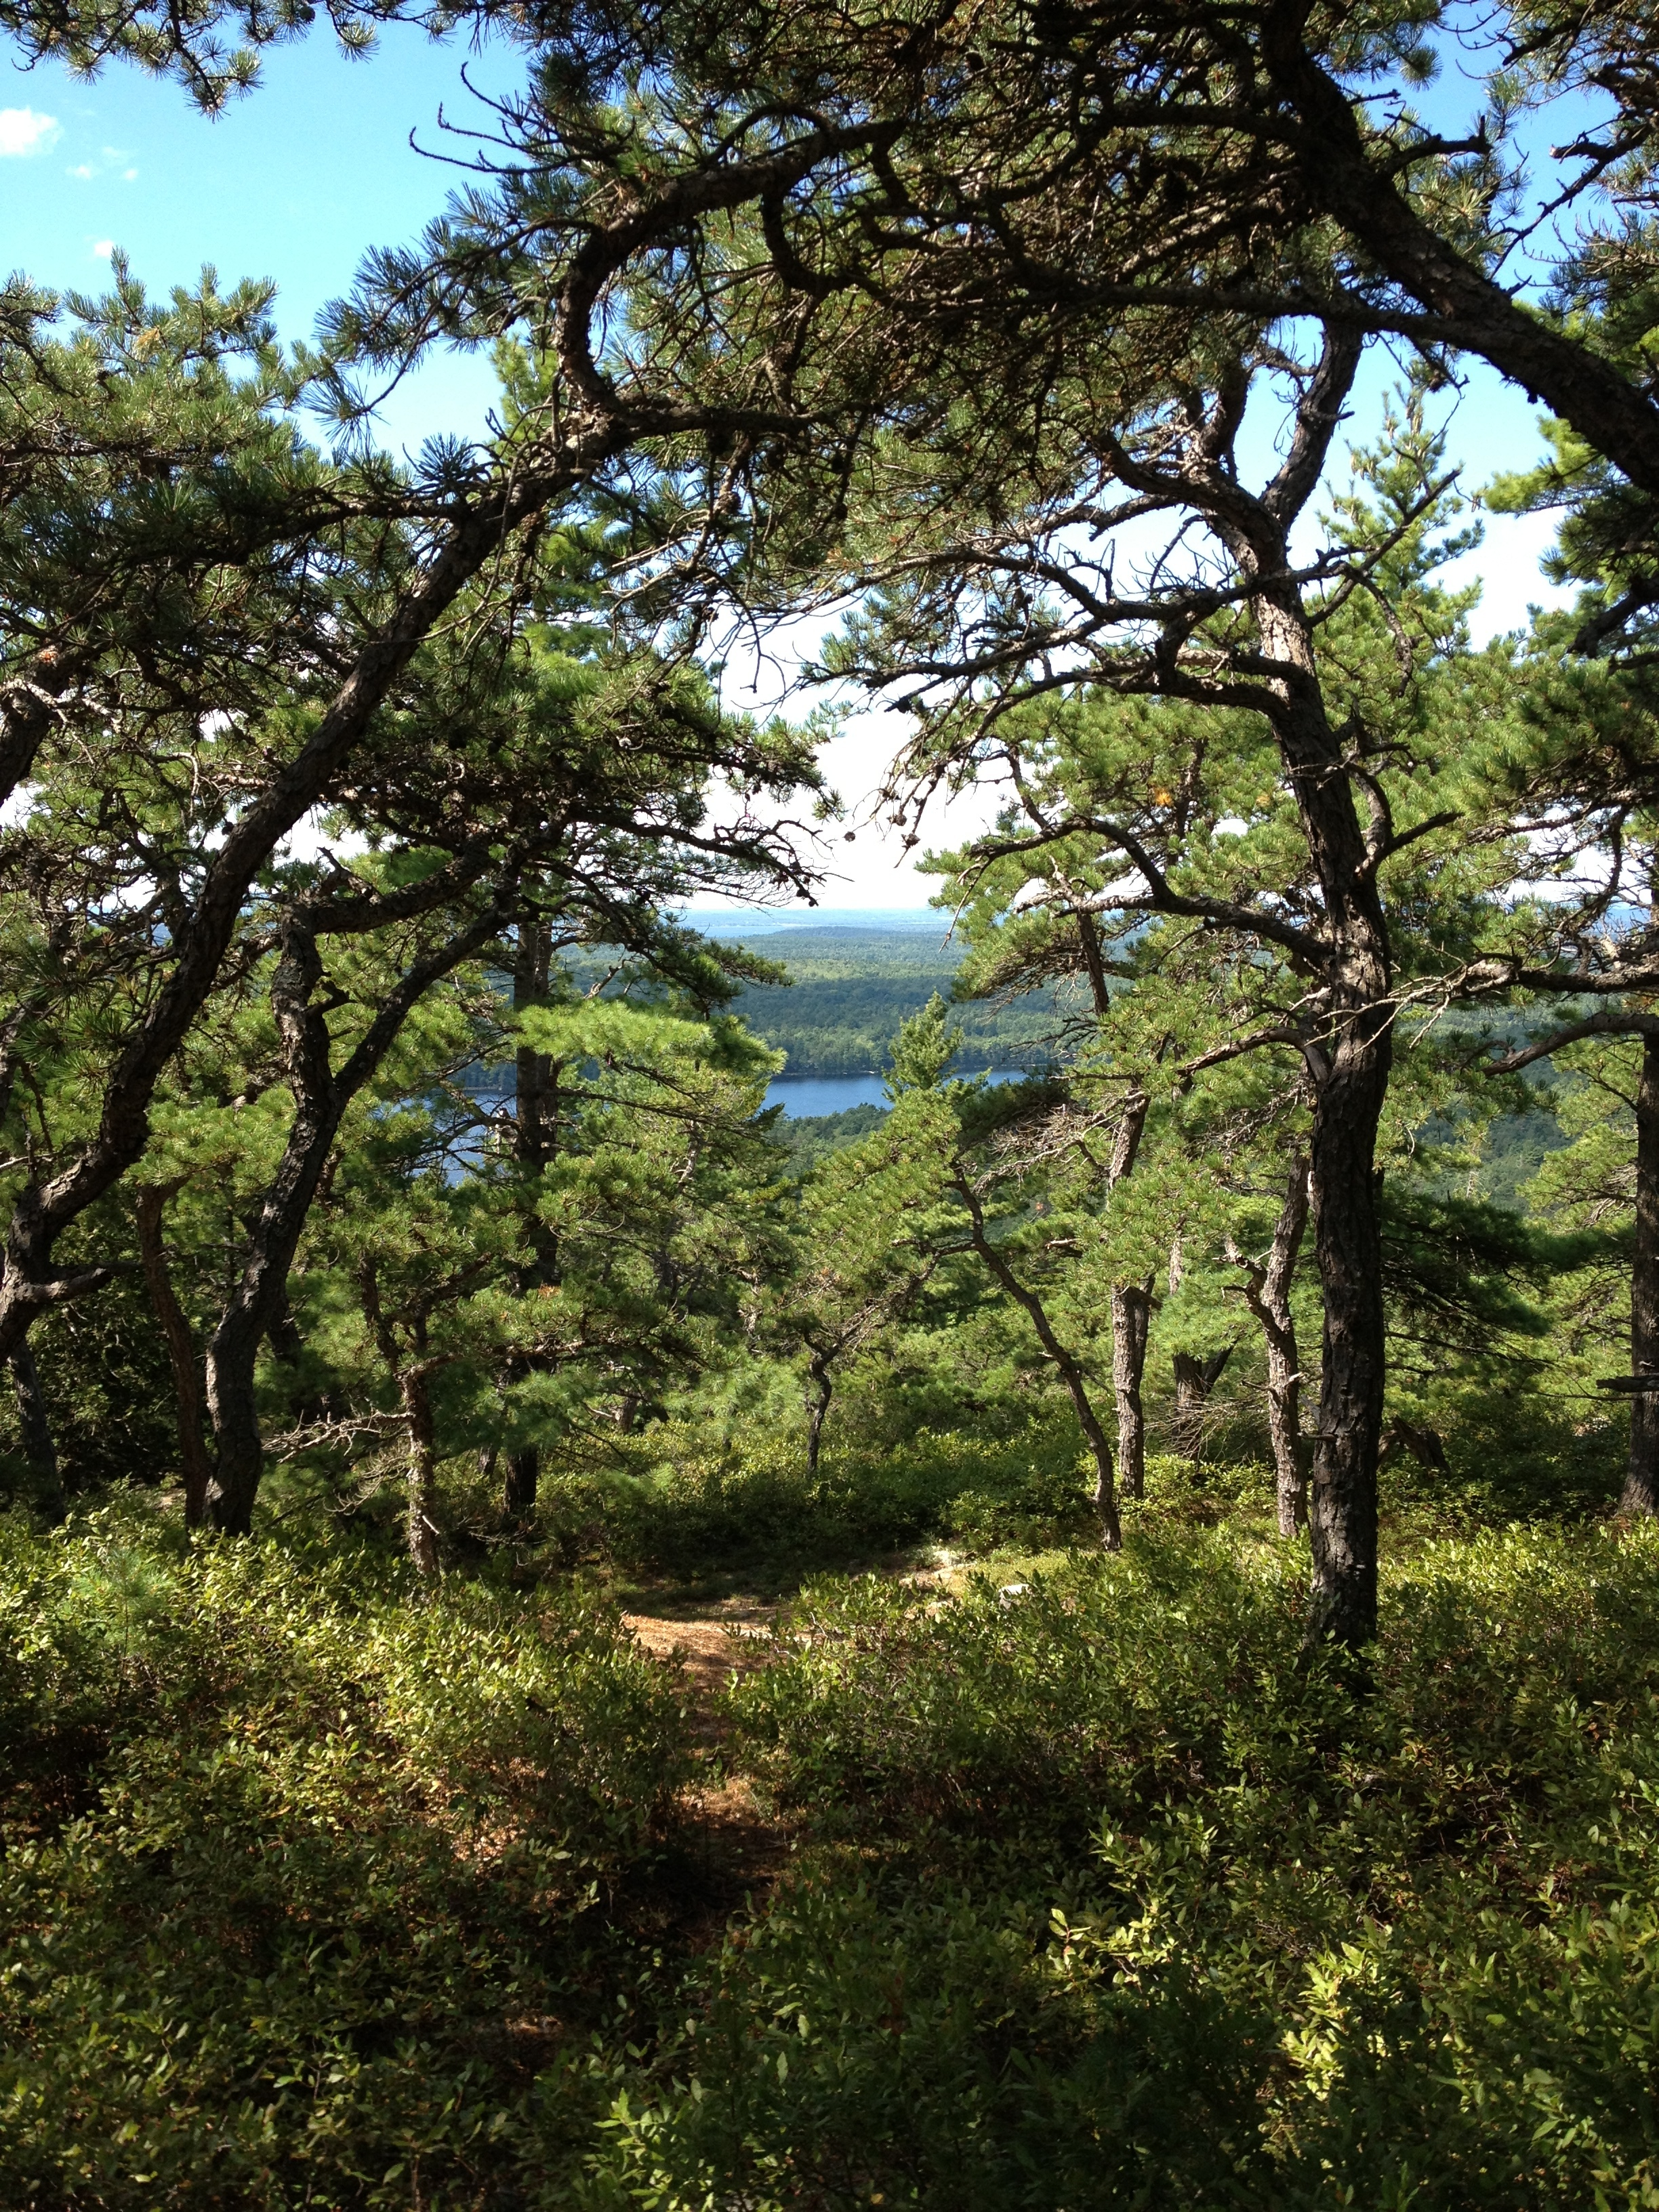 View from Acadia Mountain trail, photo by Derek Wright.